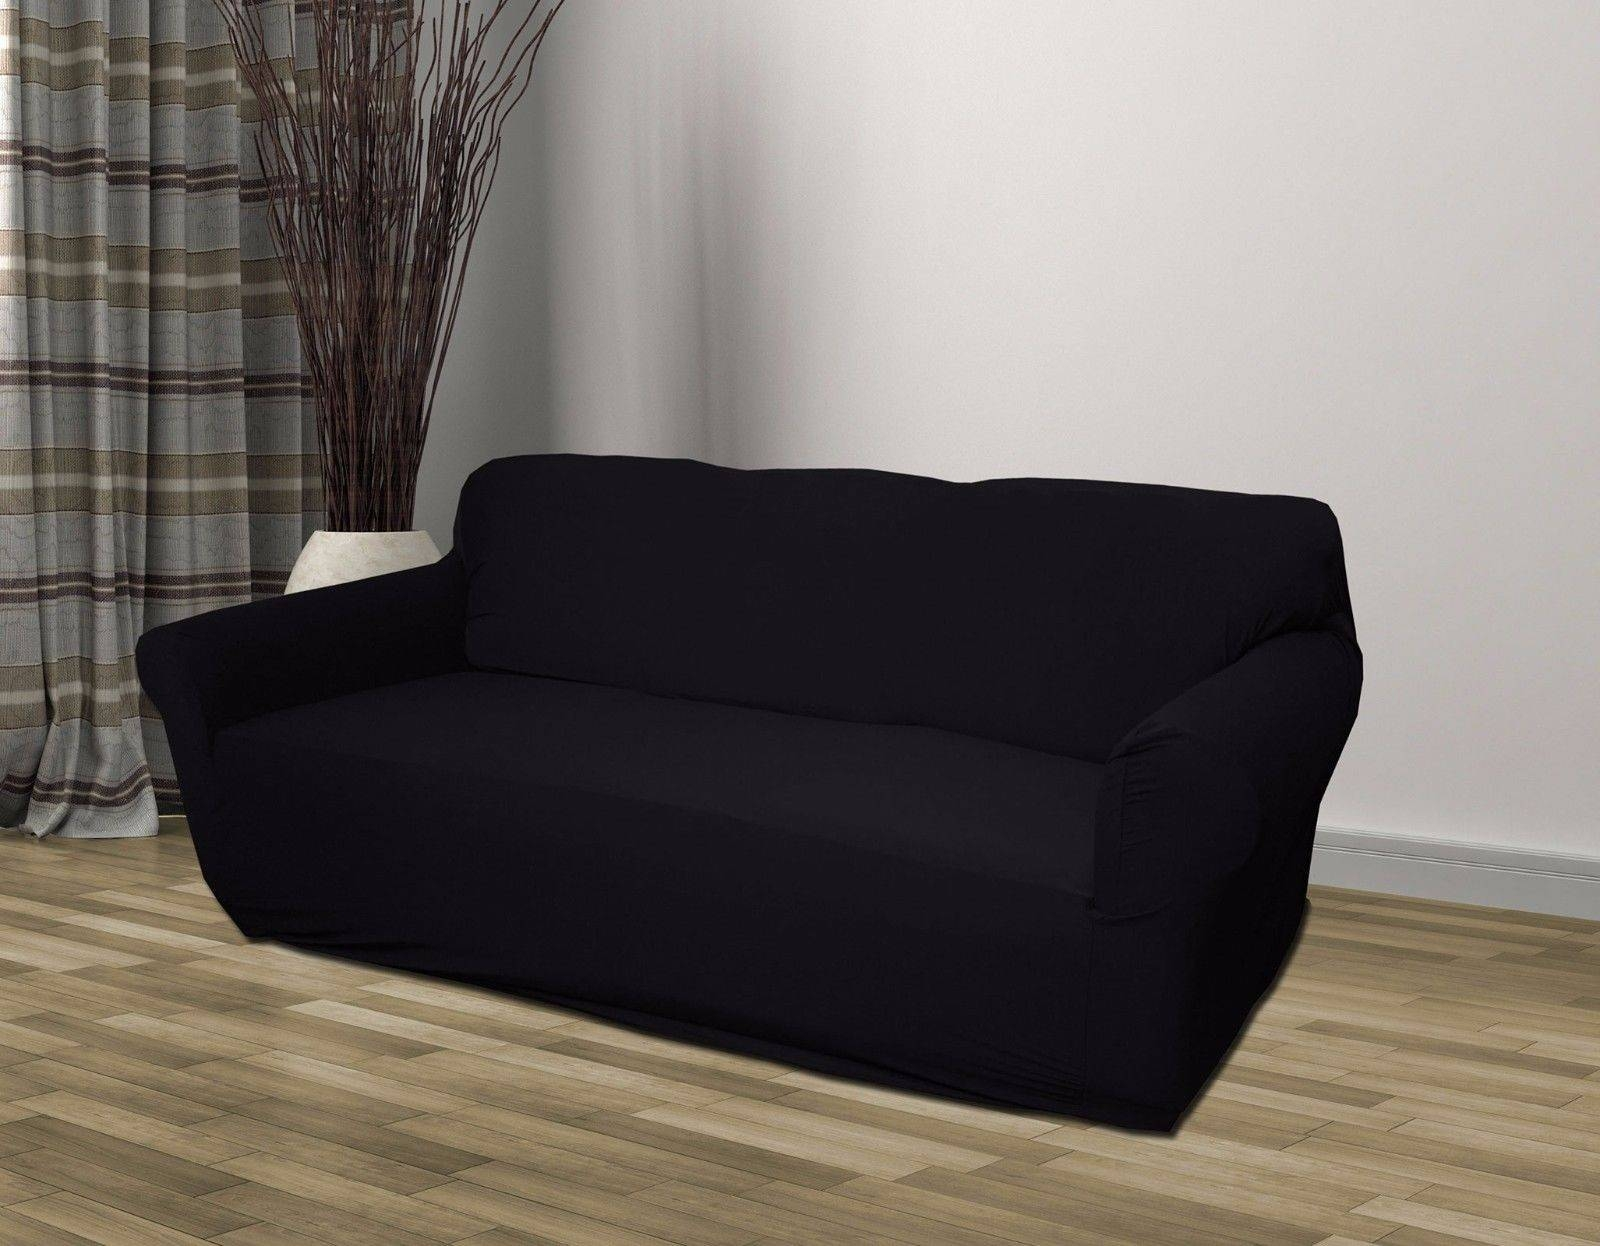 Sofa: Reclining Couch Slipcovers | Double Recliner Sofa Slipcover pertaining to Black Sofa Slipcovers (Image 13 of 15)